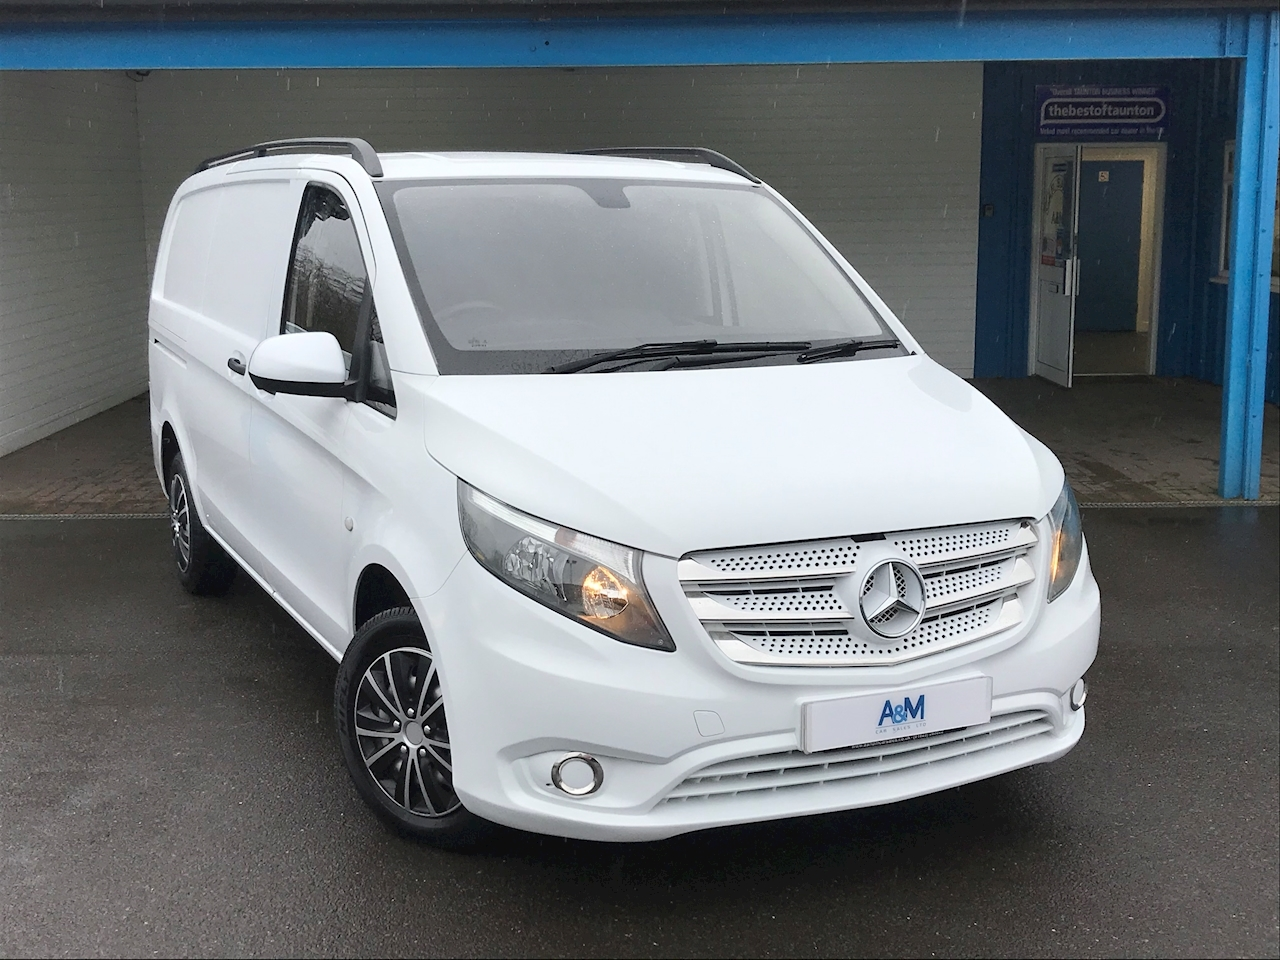 Mercedes-Benz 1.6 111 CDi Panel Van 6dr Diesel Manual FWD L2 EU5 (114 ps)